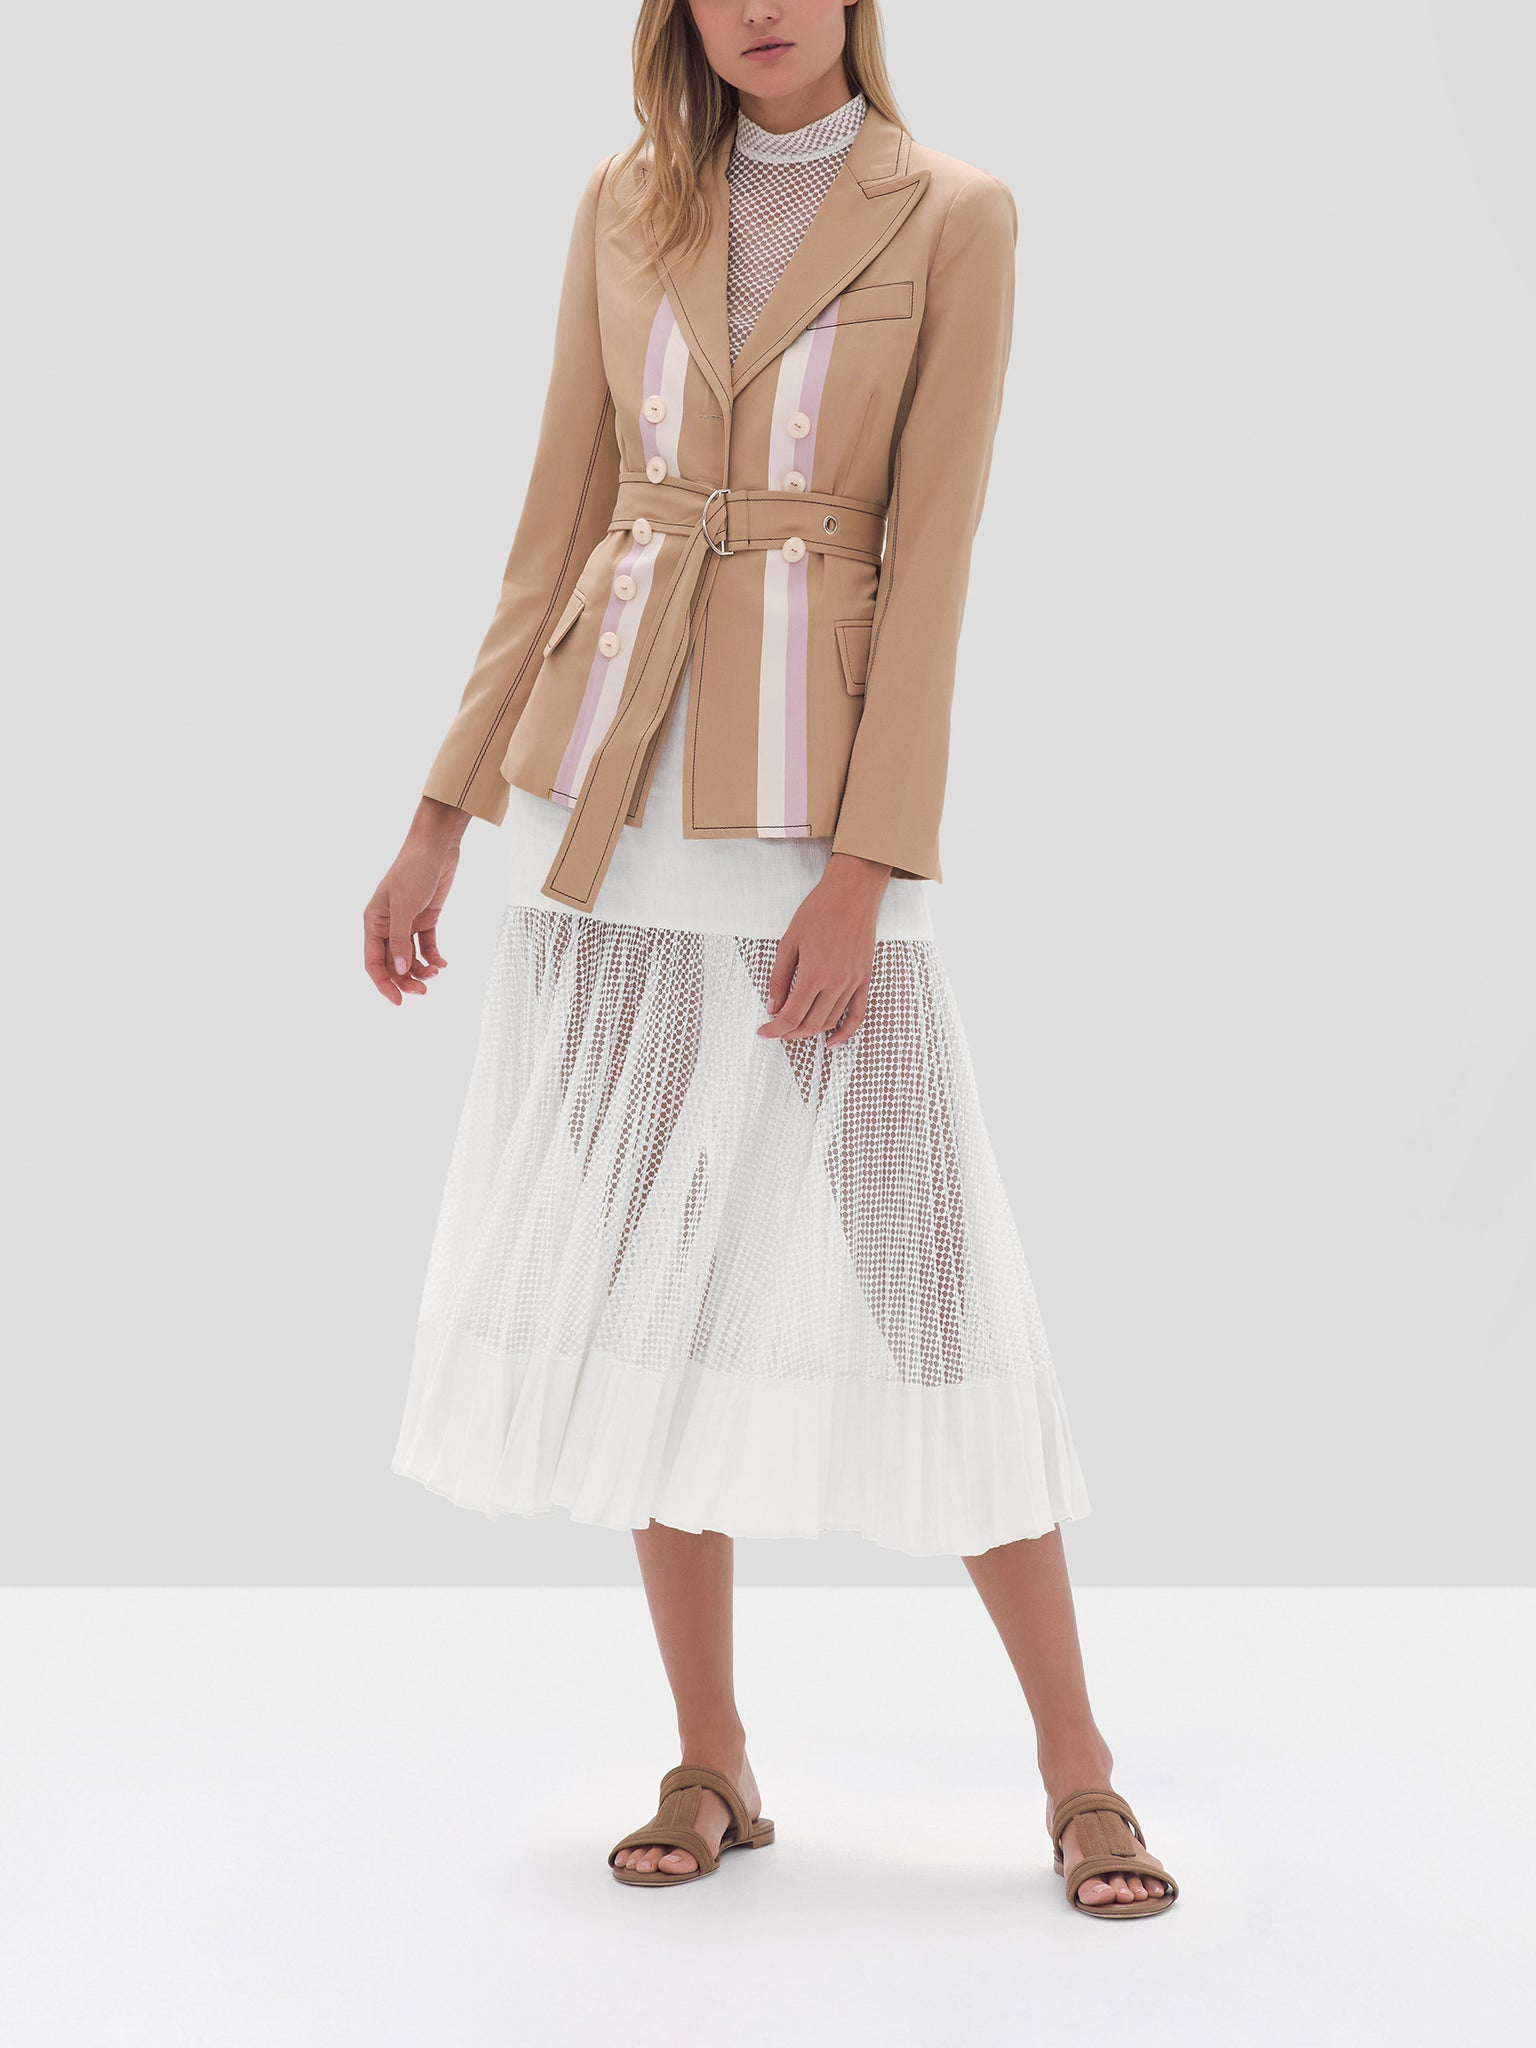 Alexis Nourdine Blazer in Striped Tan, Wera Top in White, Bartley Skirt in White